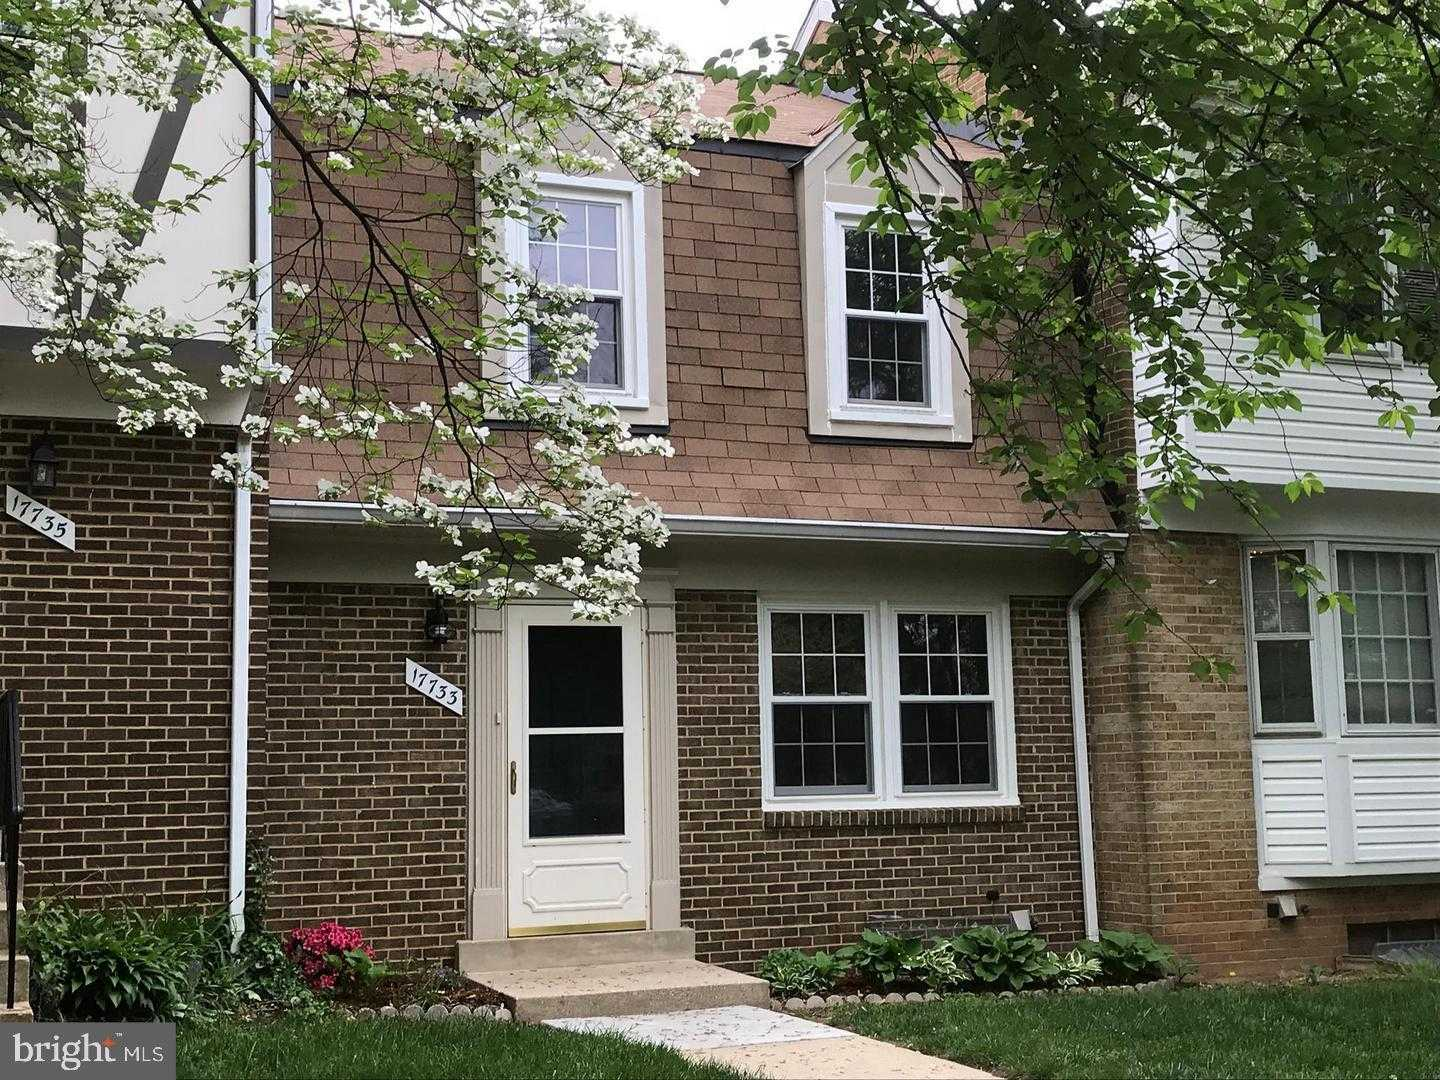 $320,000 - 3Br/3Ba -  for Sale in The Hglds Of Olney Codm, Olney